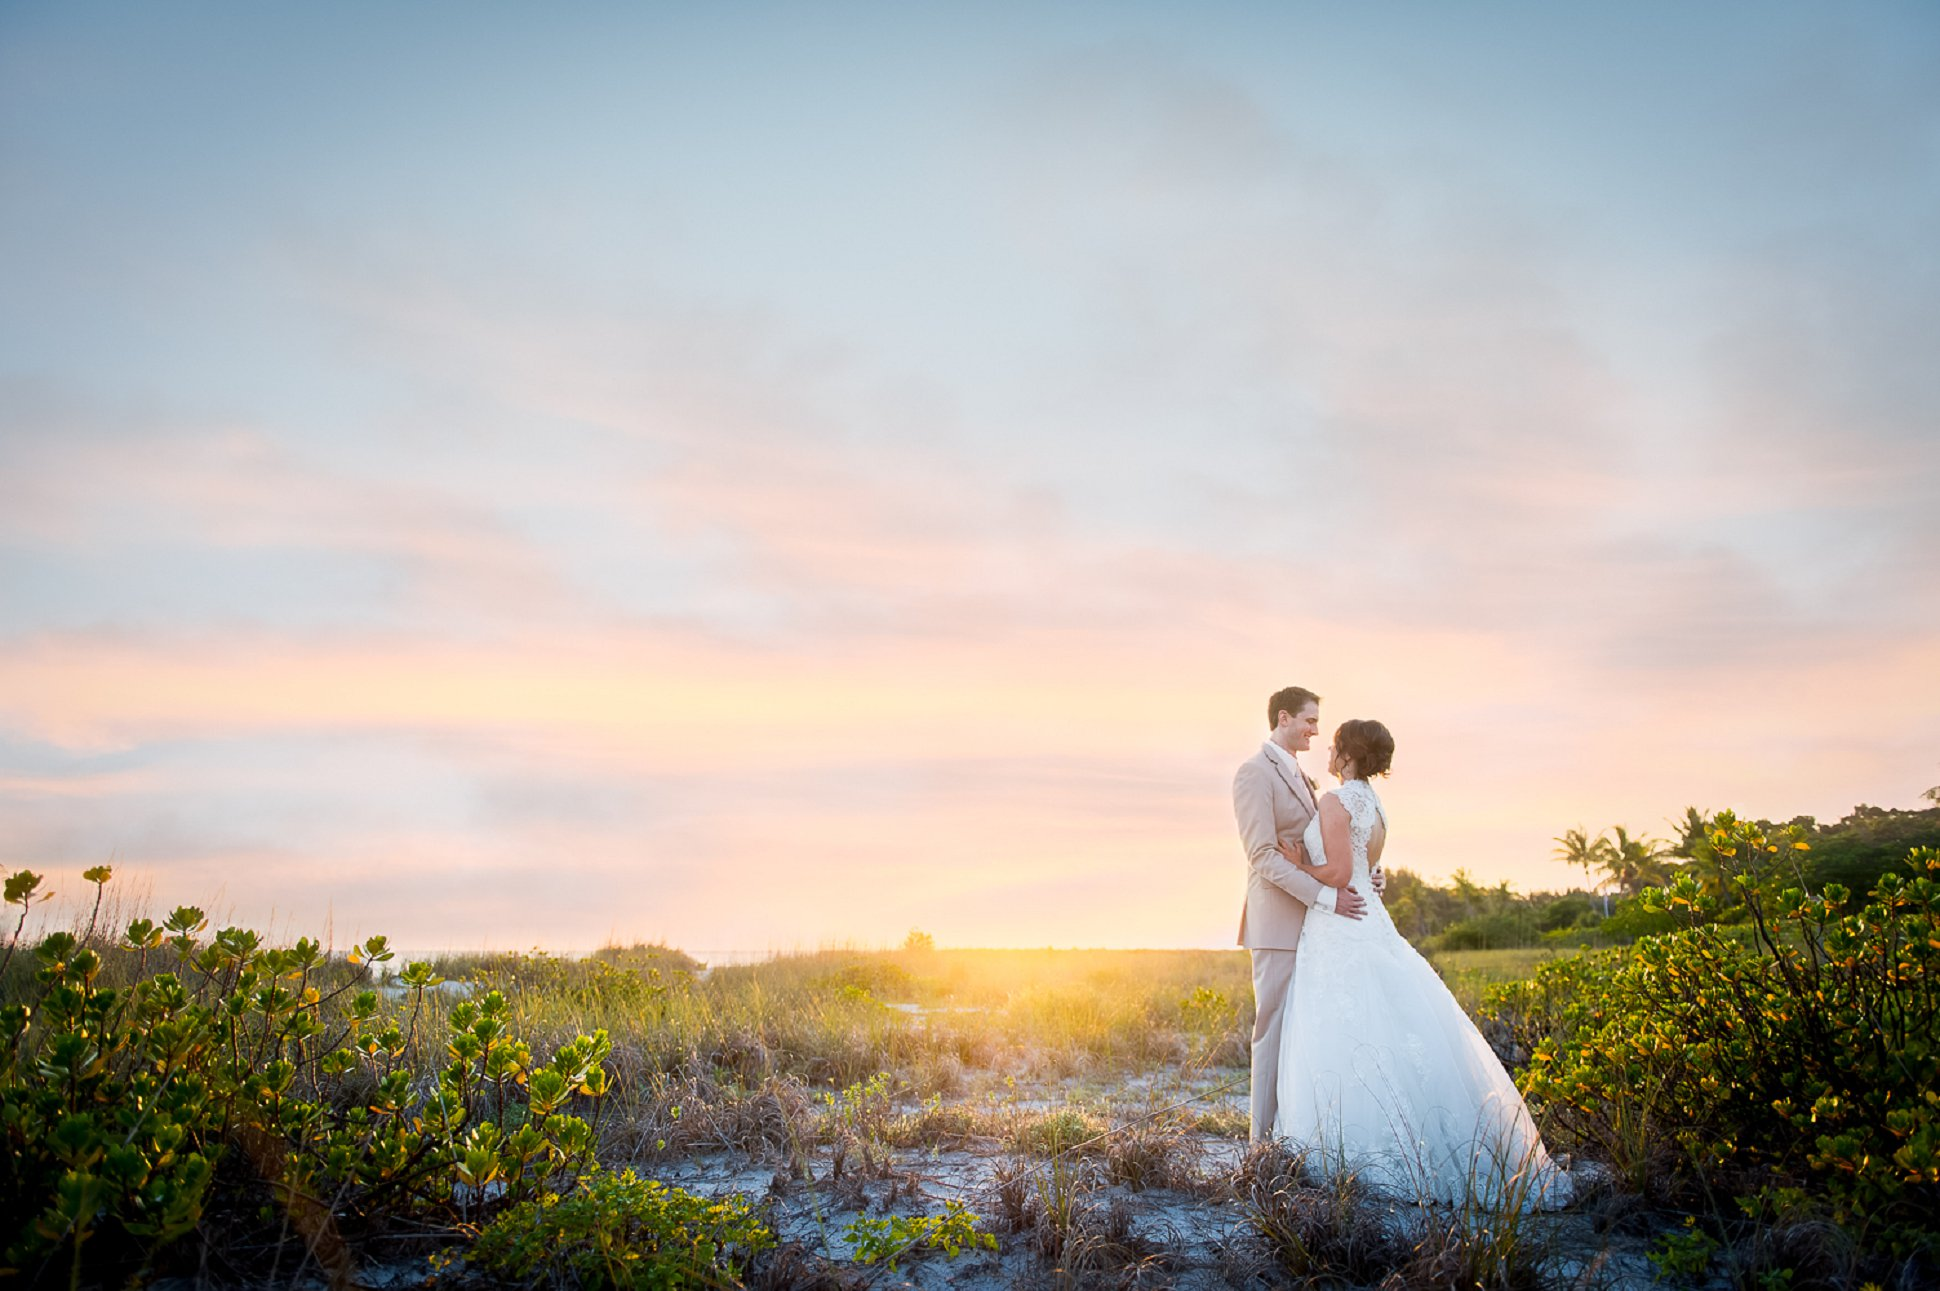 sanibel florida, wedding photography, florida wedding photographers, florida destination wedding